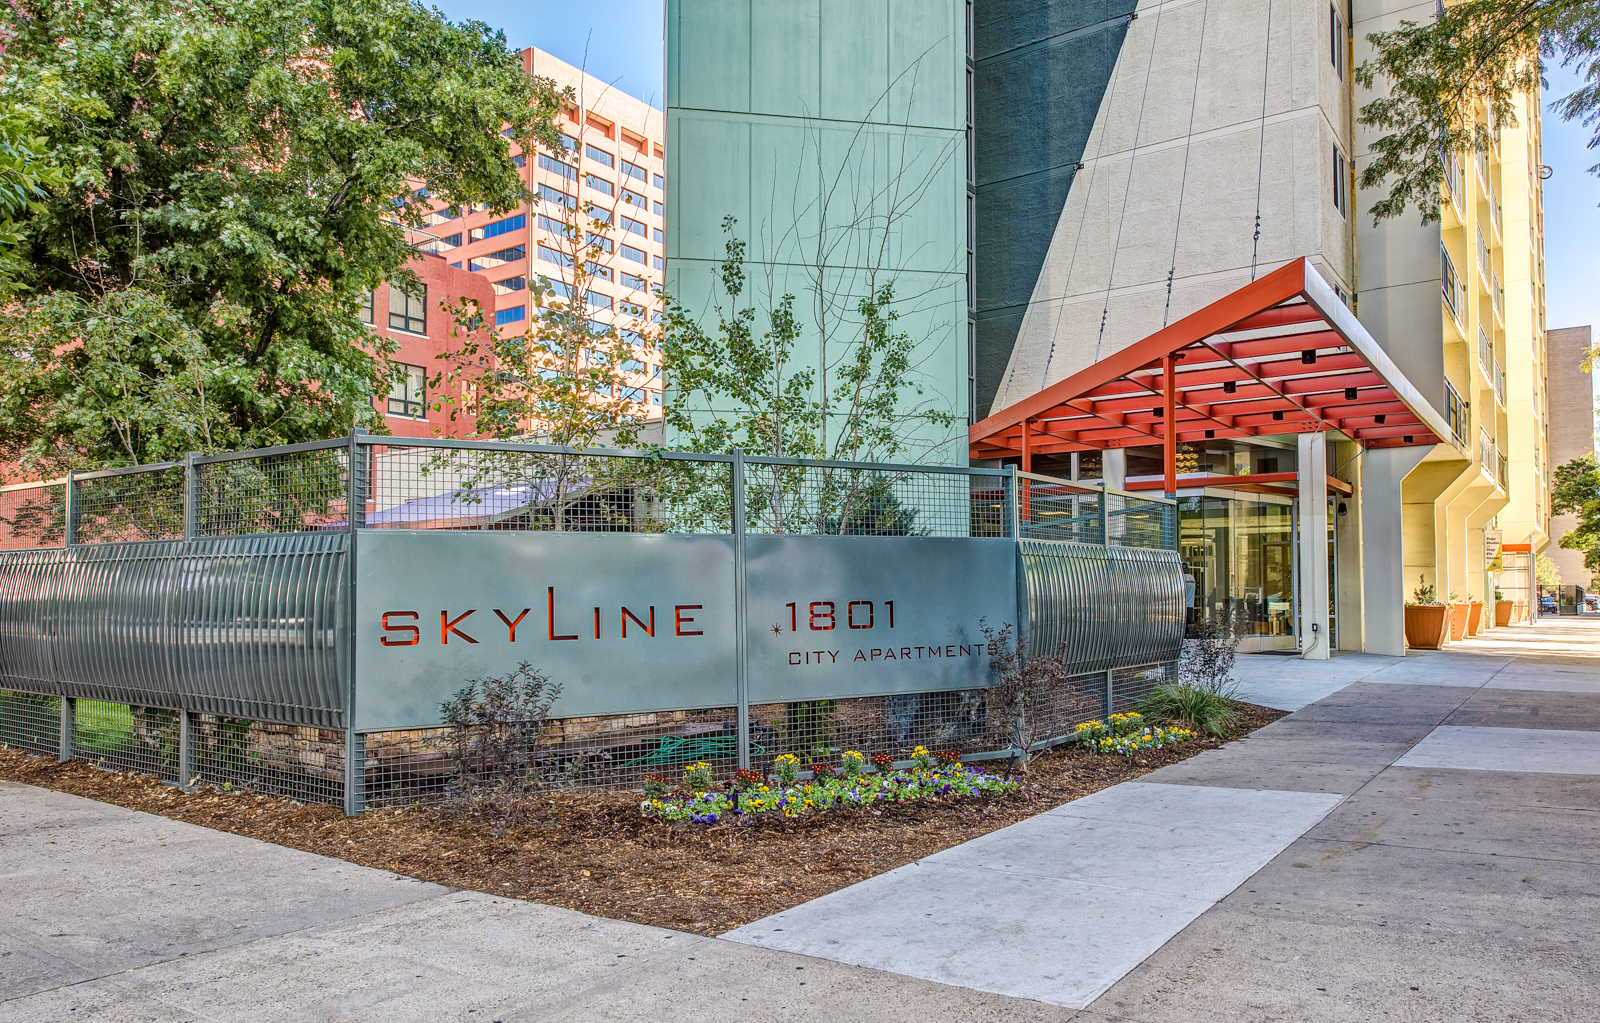 Skyline 1801 - A Skyline lifestyle is an active one that's marked by progress